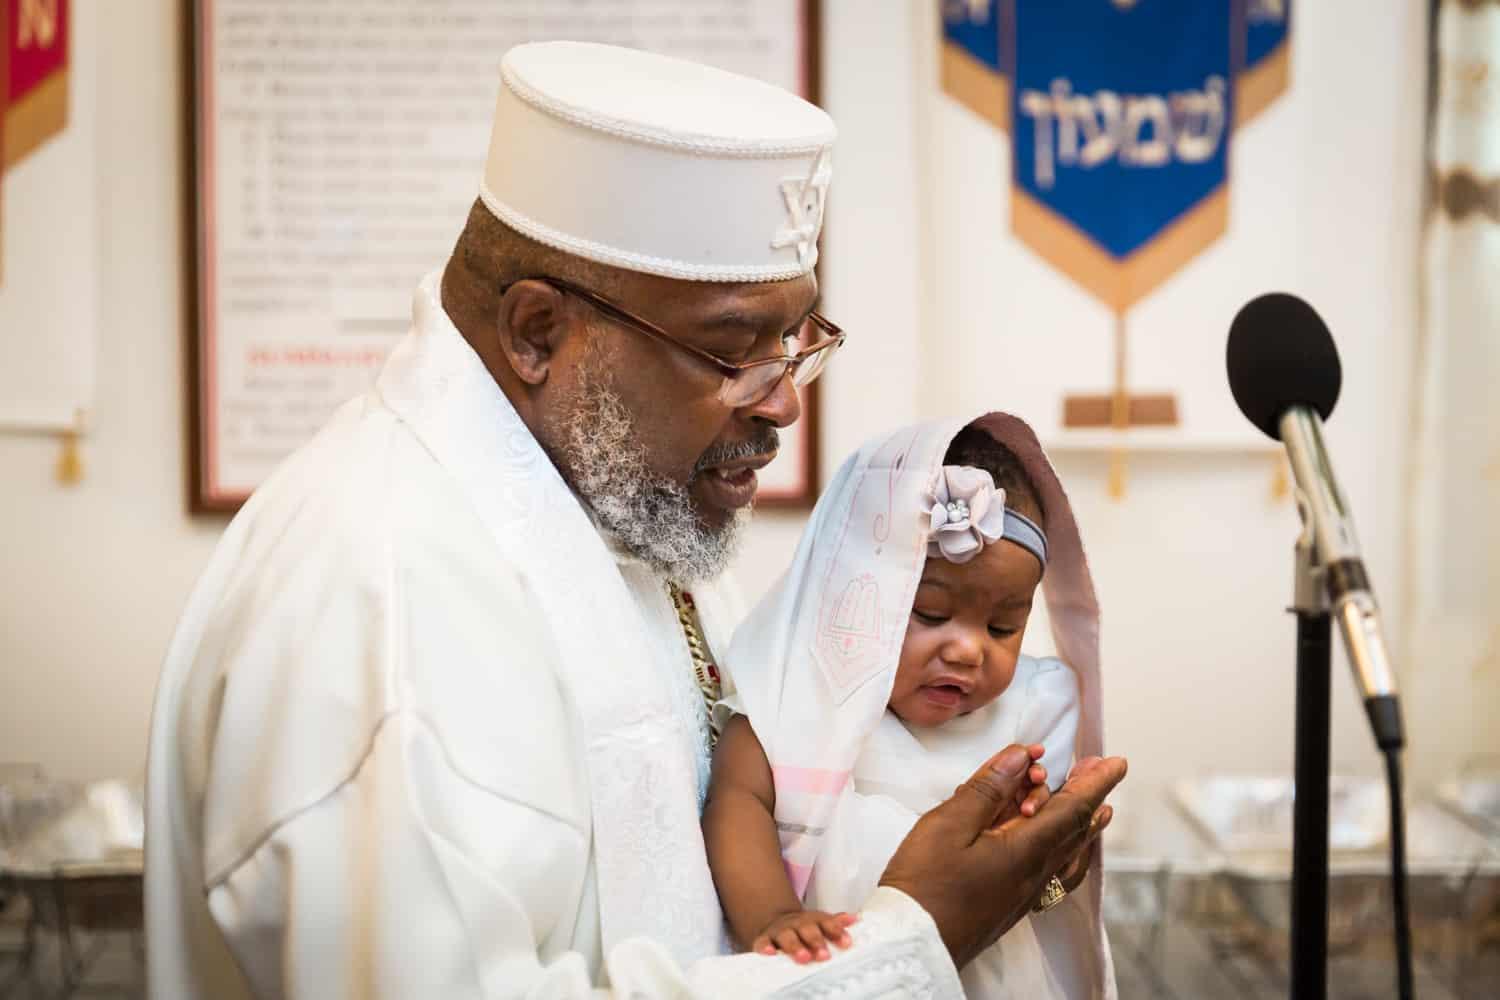 Pastor in white robe and hat holding little baby during Jamaica christening